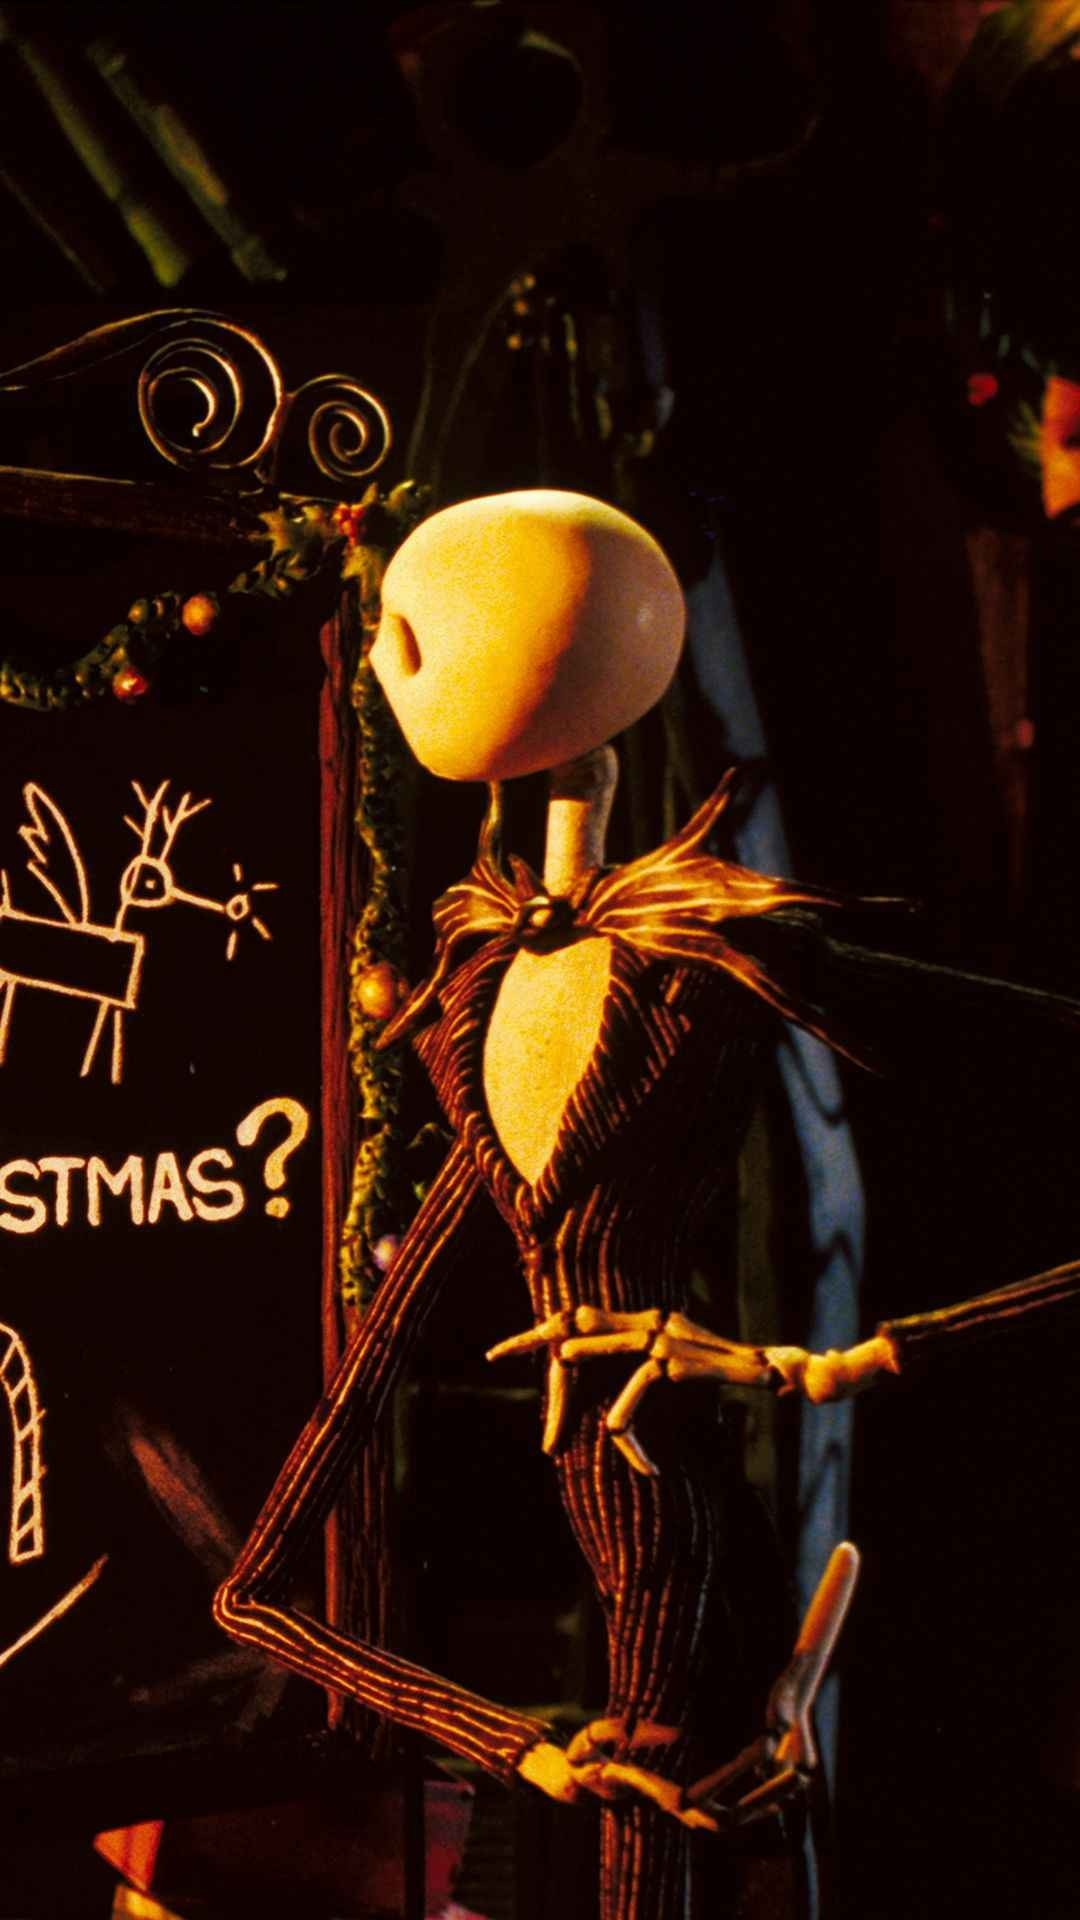 1080x1920 Formula Chalkboard 2014 Halloween Jack Skellington iPhone 6 Wallpaper - Nightmare  Before Christmas Movie #2014